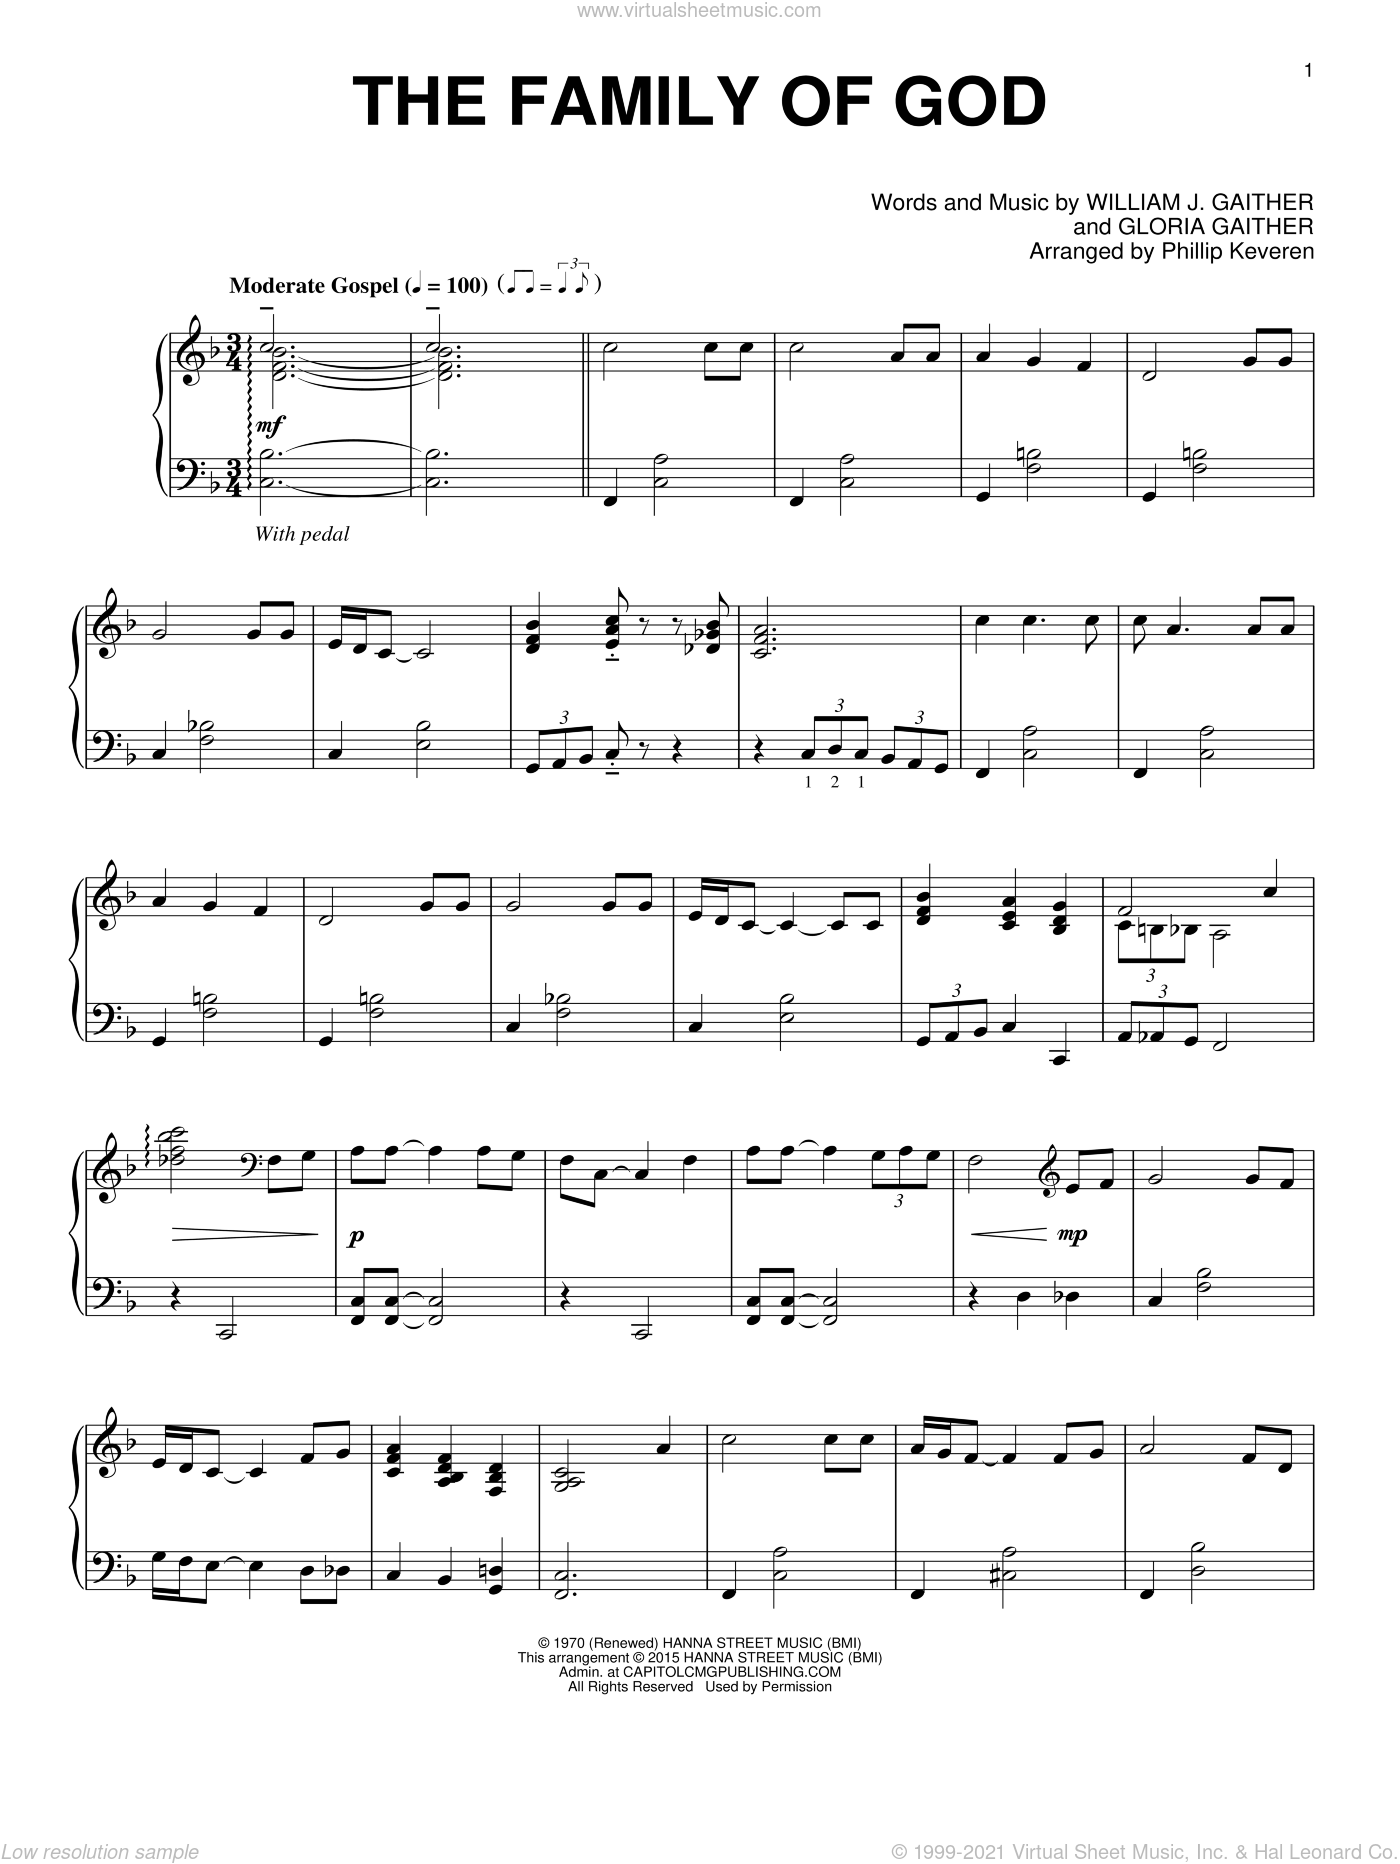 The Family Of God sheet music for piano solo by Gloria Gaither, Phillip Keveren and William J. Gaither, intermediate skill level